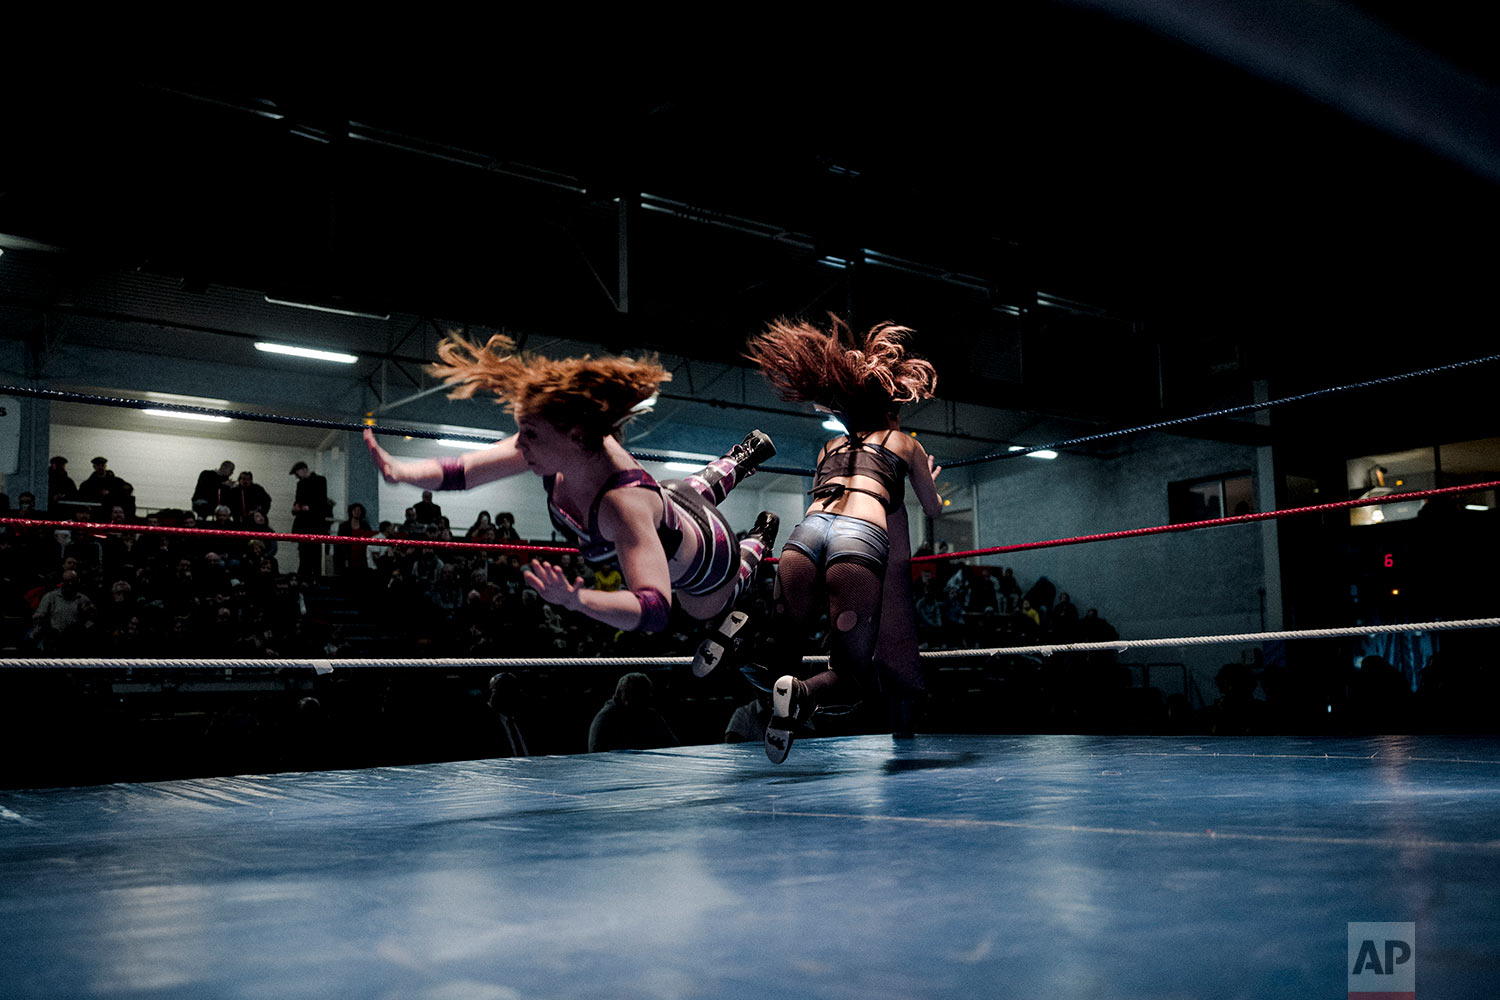 In this photo dated Saturday, Feb. 24, 2018, wrestler Camille, left, fights with Delia during a wrestling charity gala in Ivry-sur-Seine, south of Paris, France. (AP Photo/Kamil Zihnioglu)